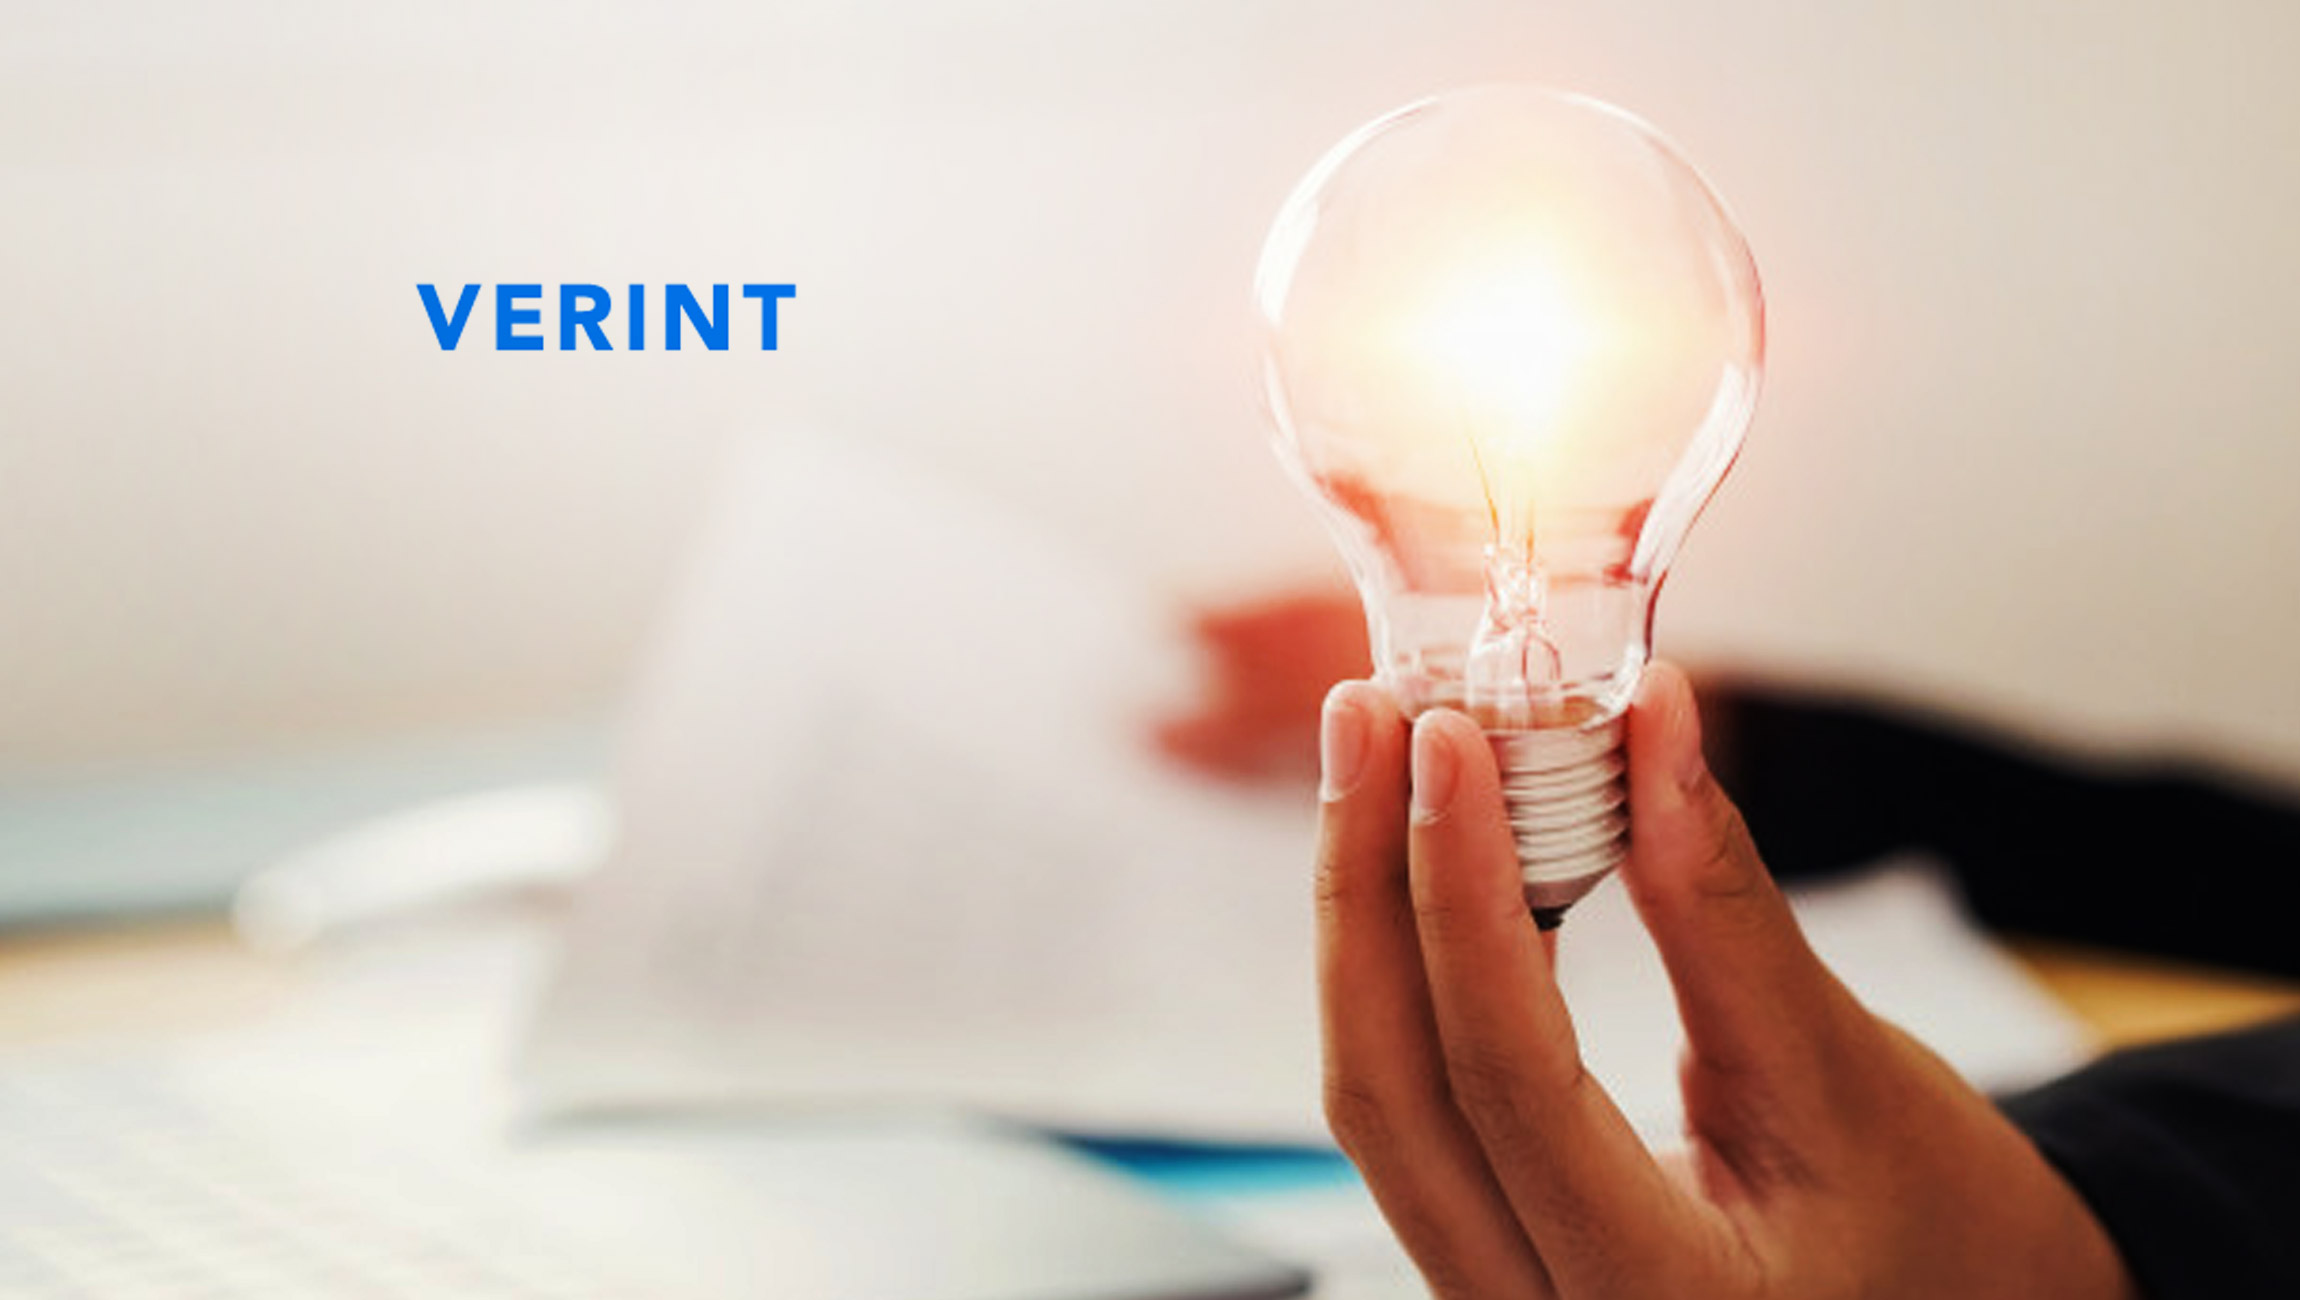 Verint Announces Automation Solution to Improve Retail Banking Customer Experience